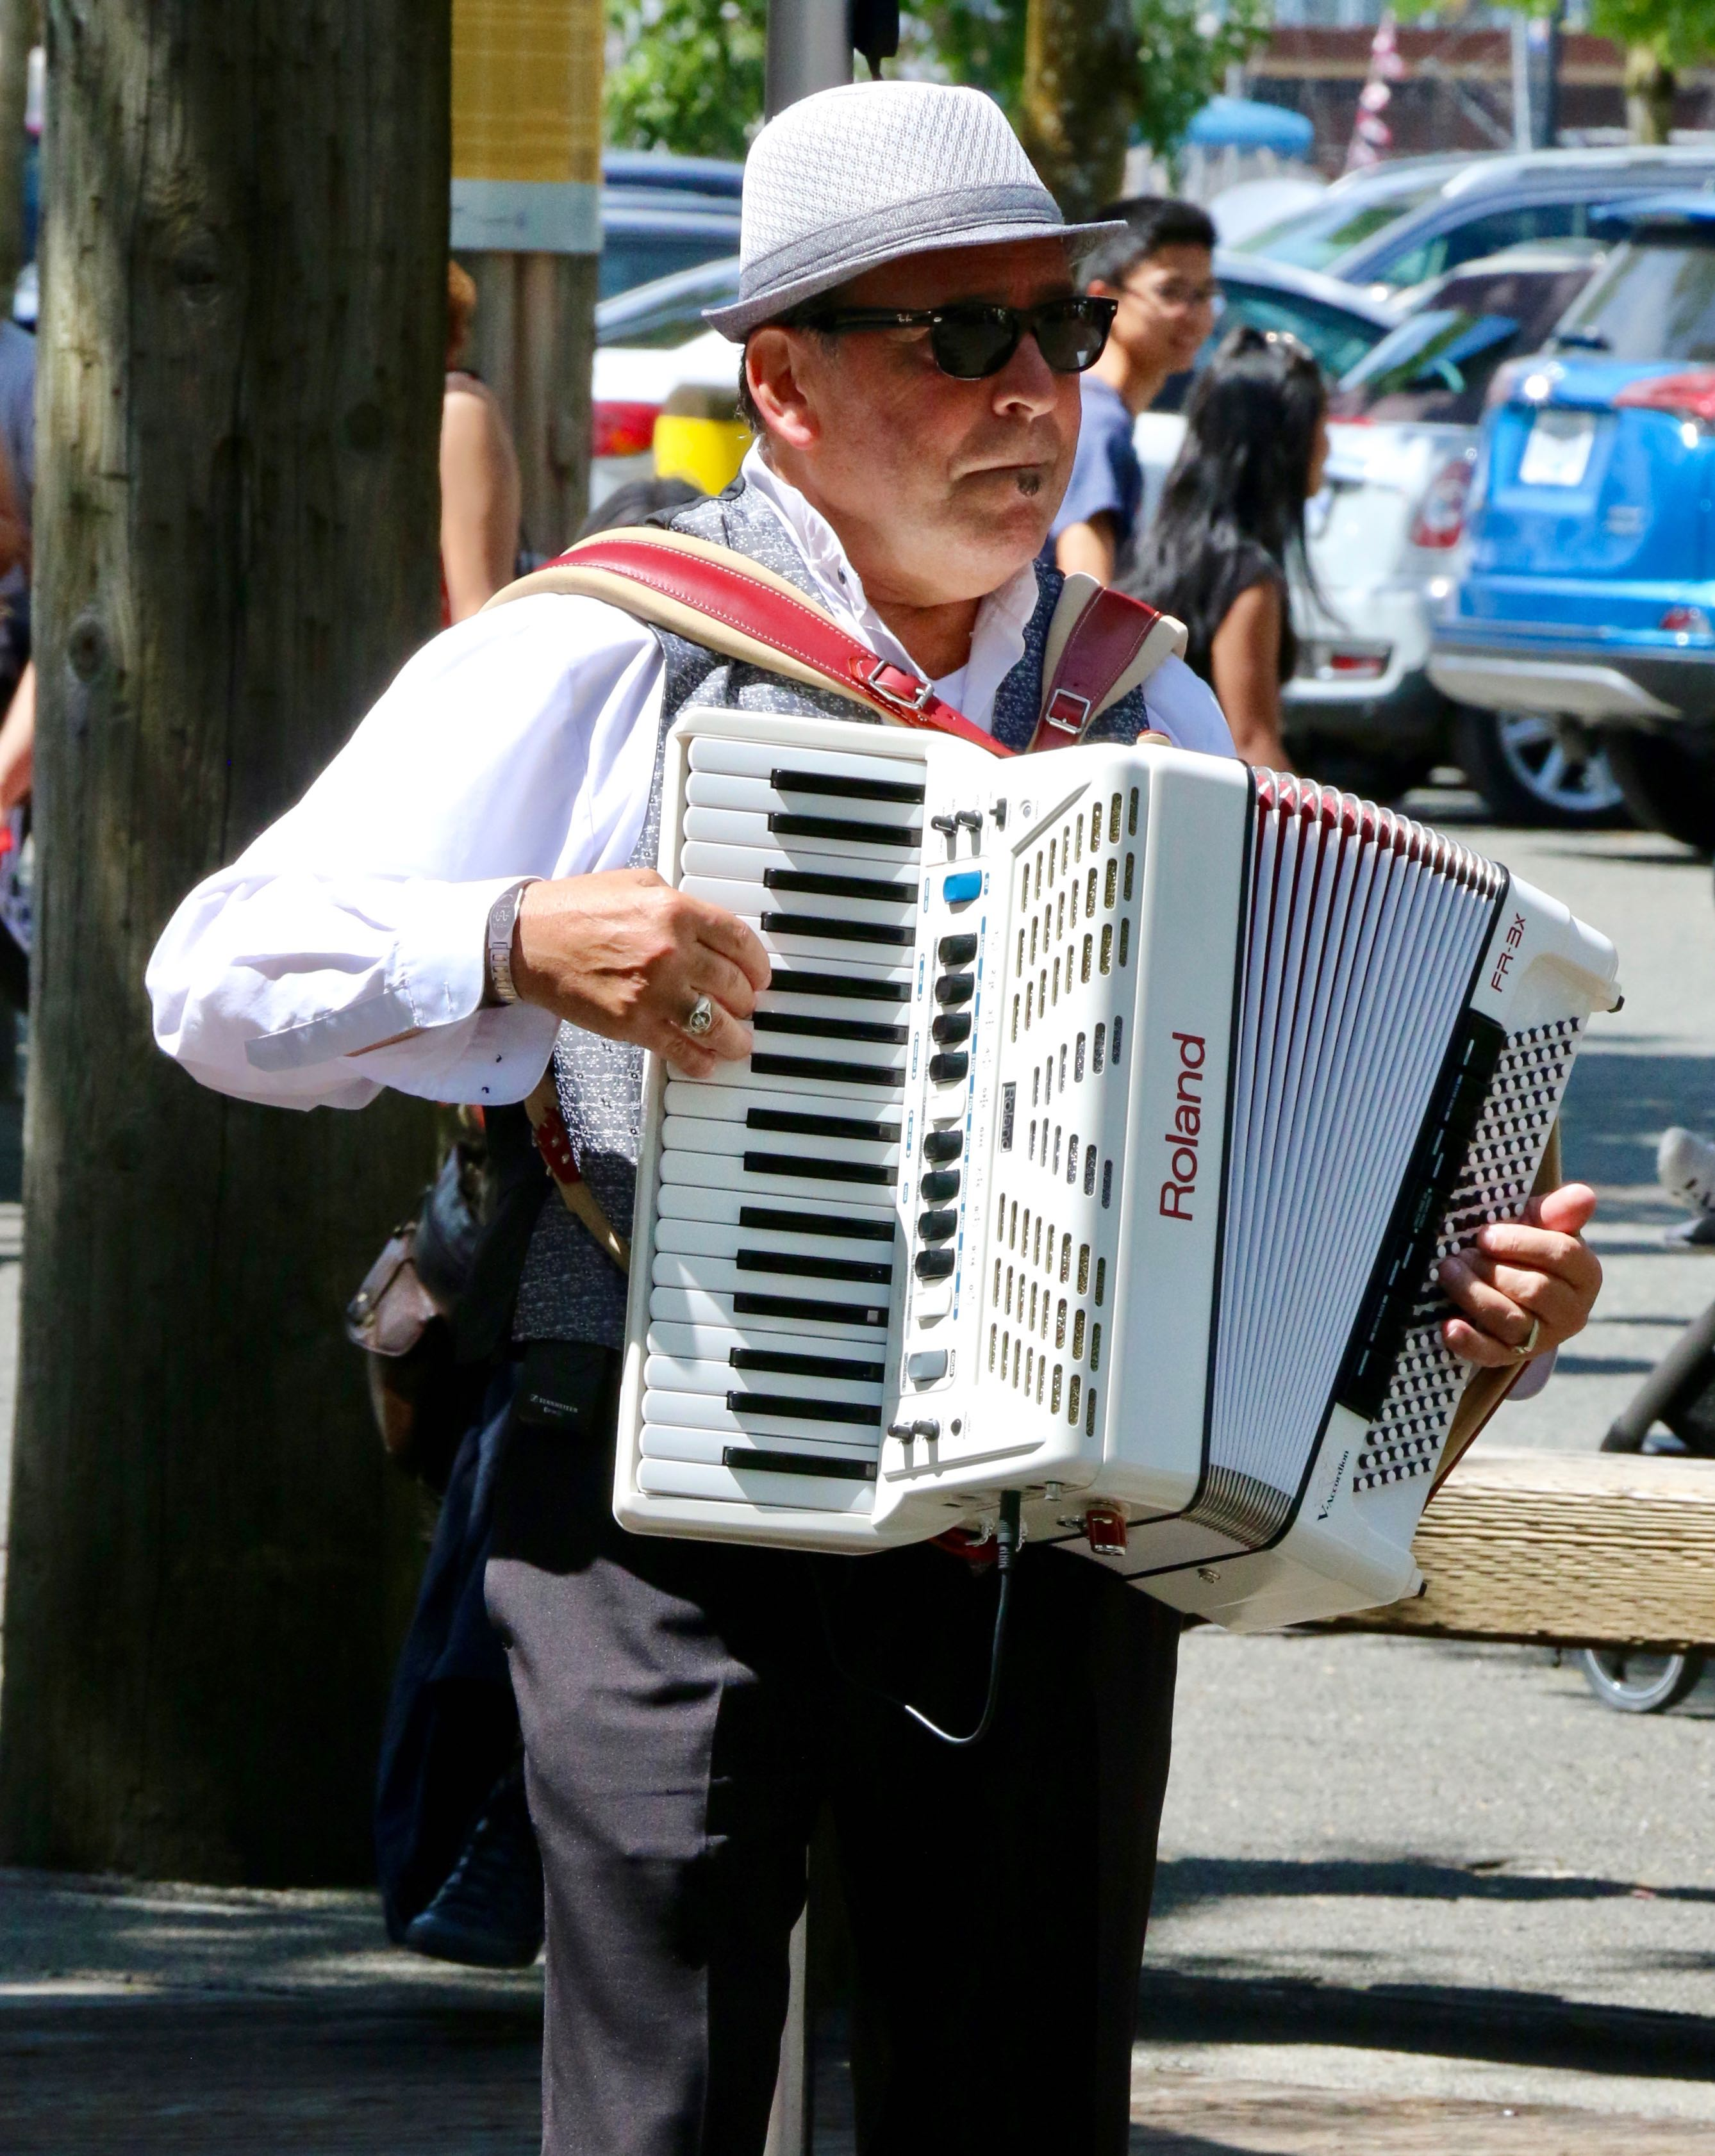 one of the many buskers on the island